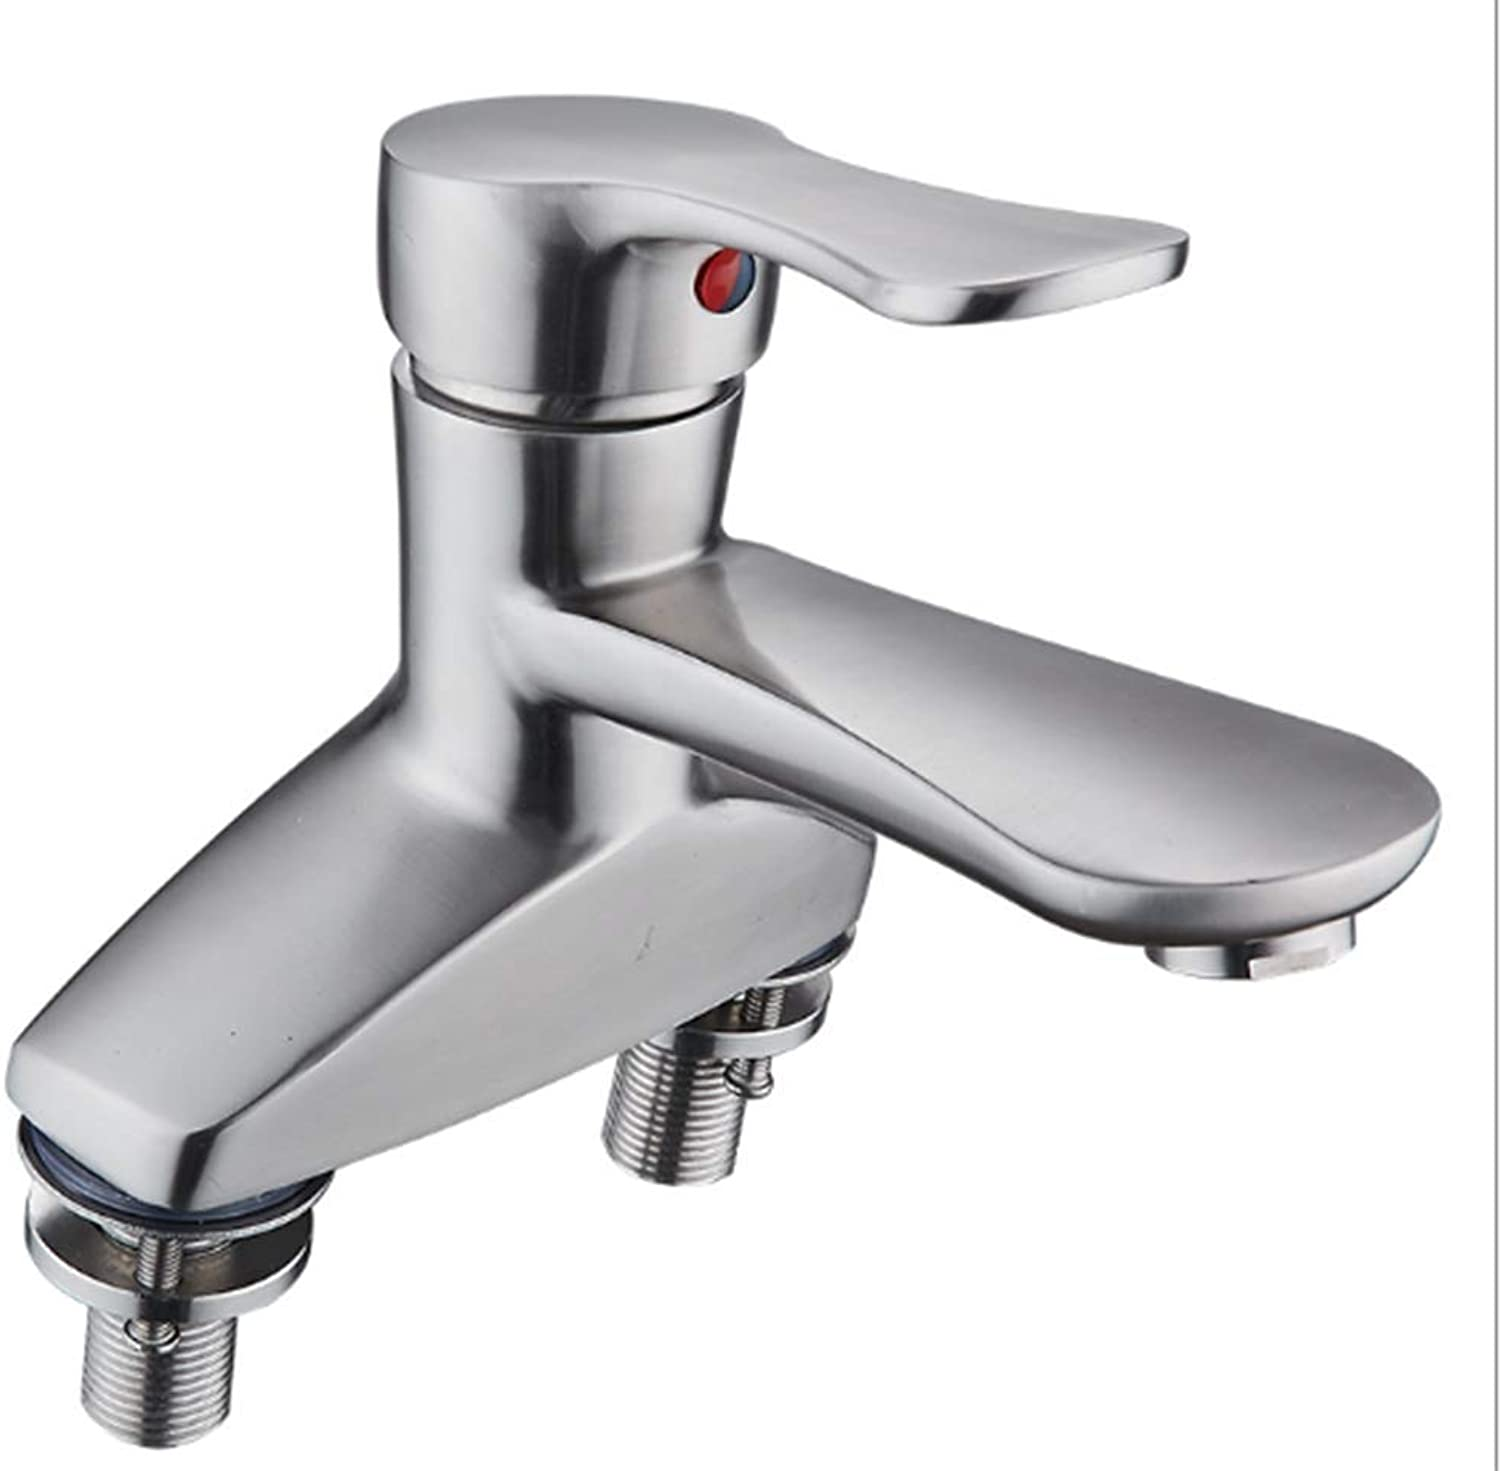 Ldoons Kitchen bathroom stainless steel hot and cold basin bathroom three holes A faucet